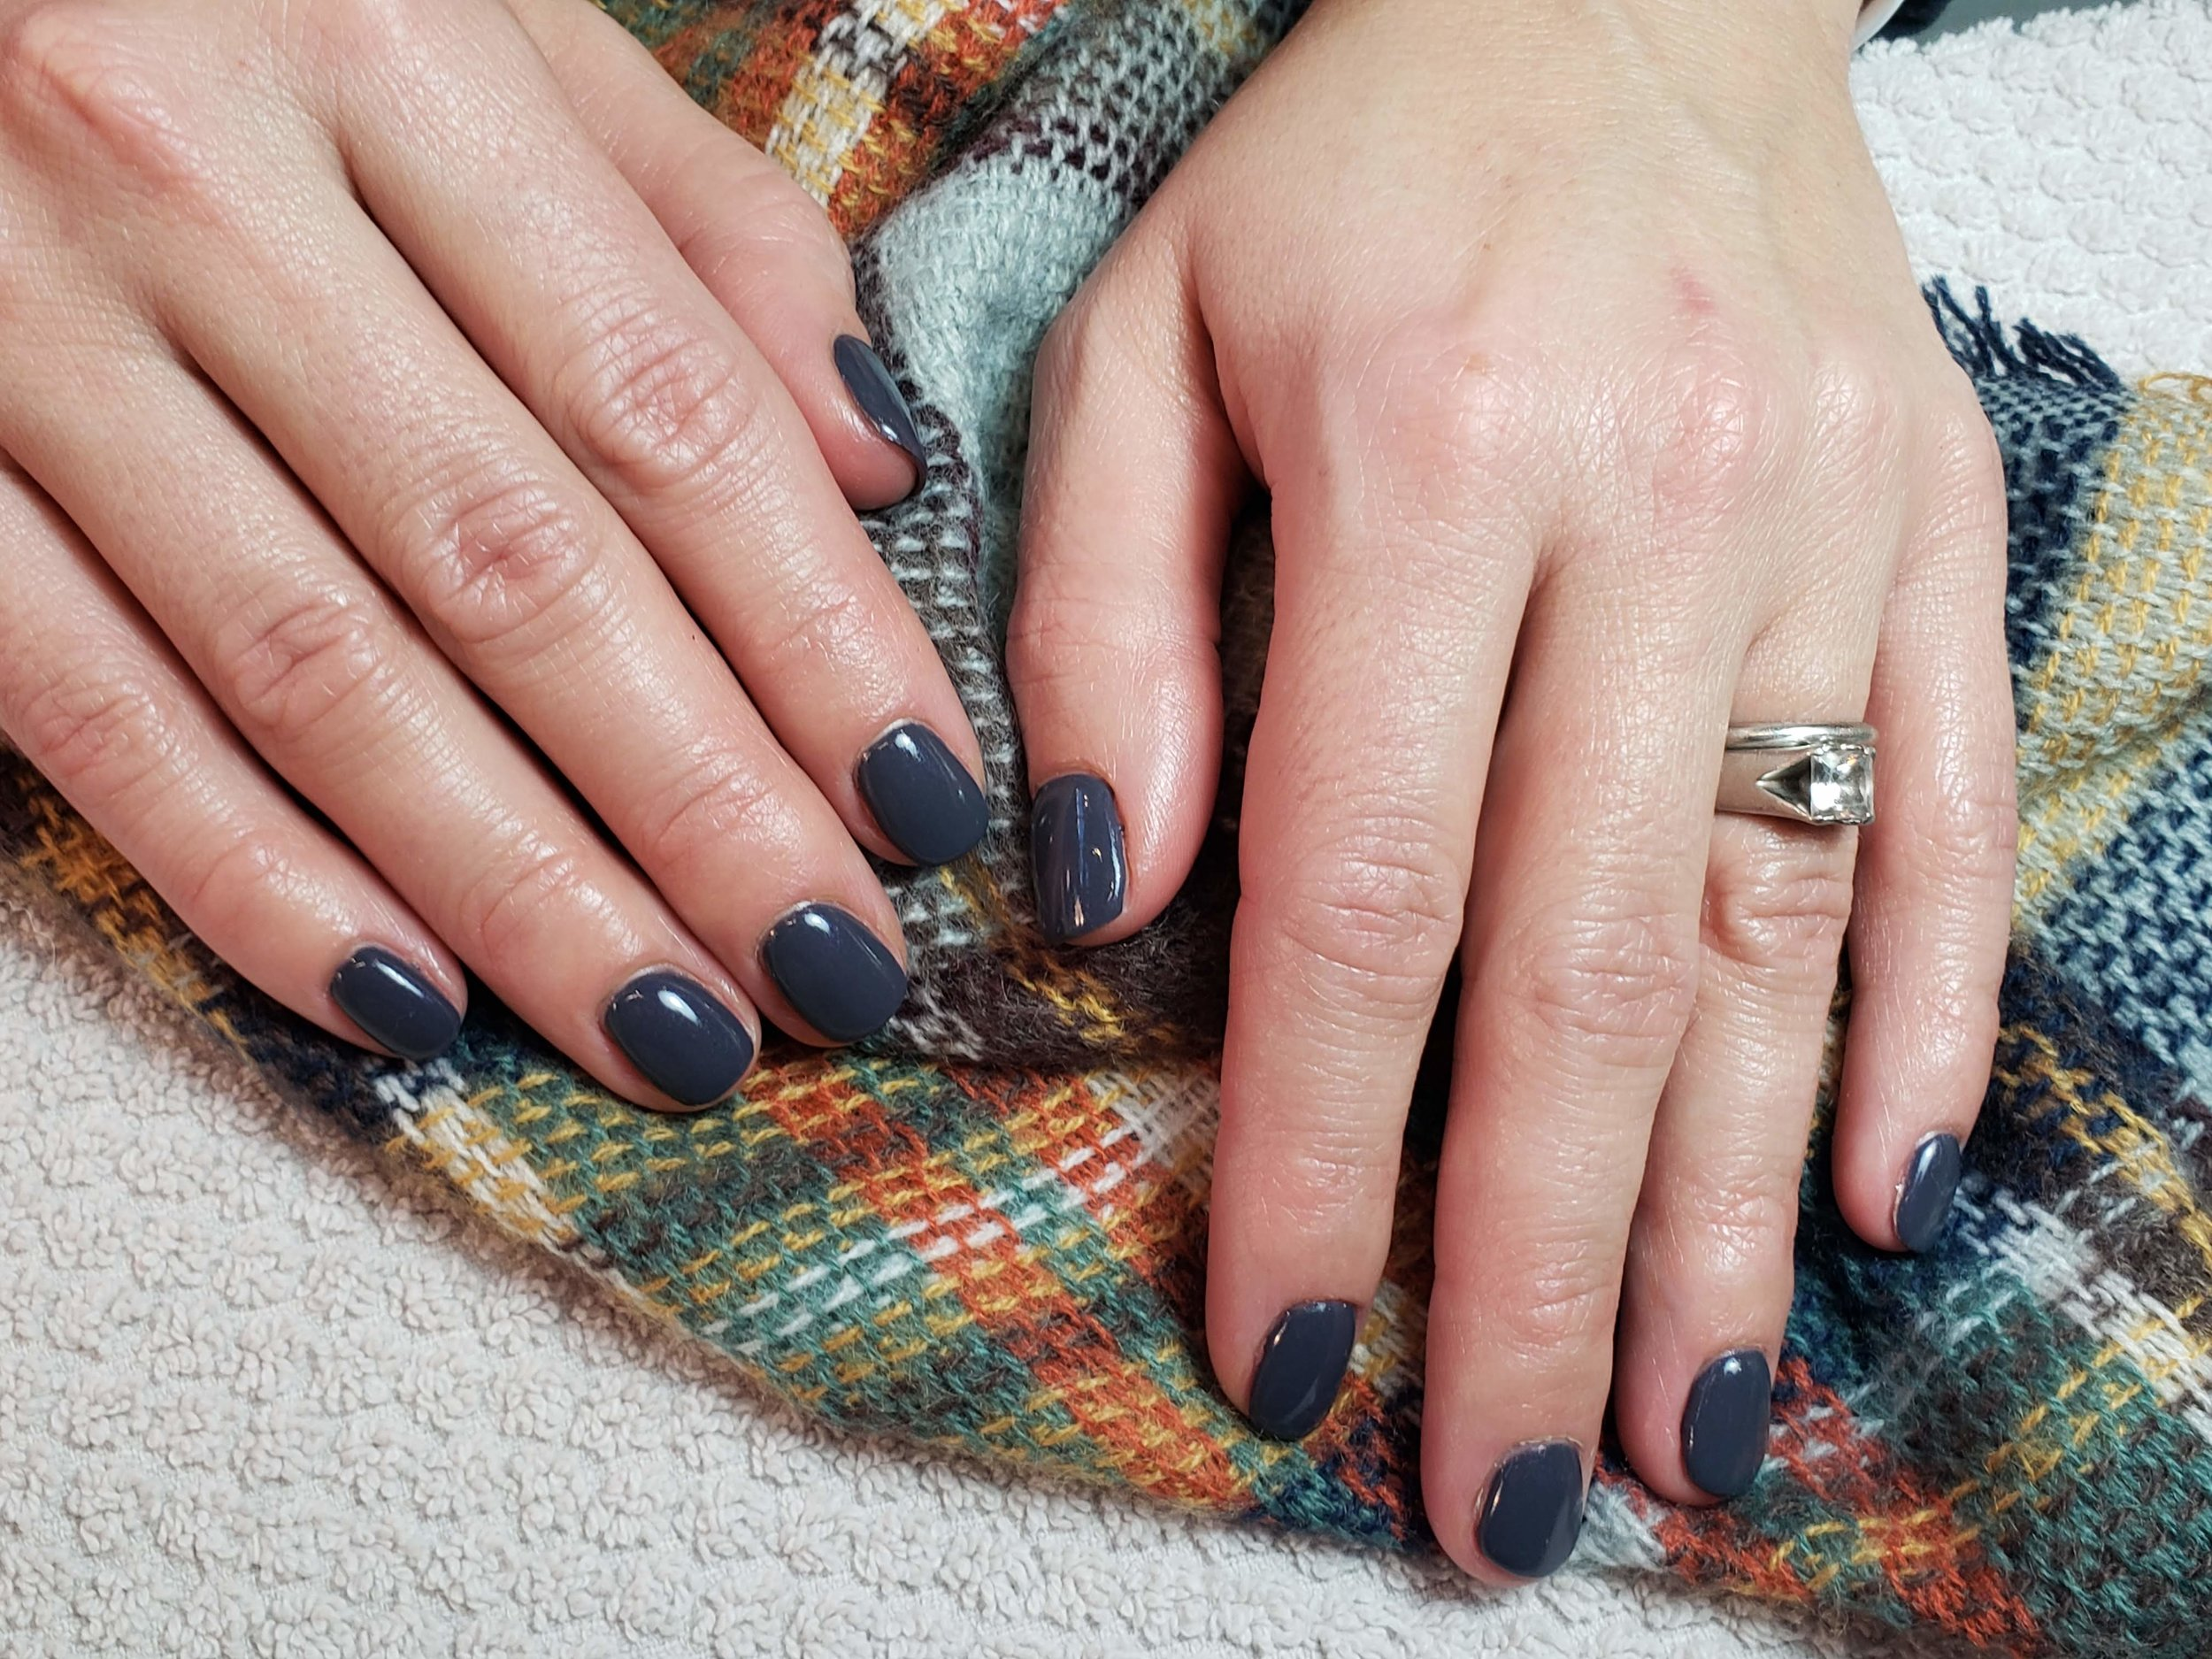 Navy Nails, Navy Manicures, Navy Manis, Best Blue Manis, Best Blue Nail Colors, Gel Nails, Bio Sculpture, Shellac, Perfect Manicure, Perfect Mani, New Nude